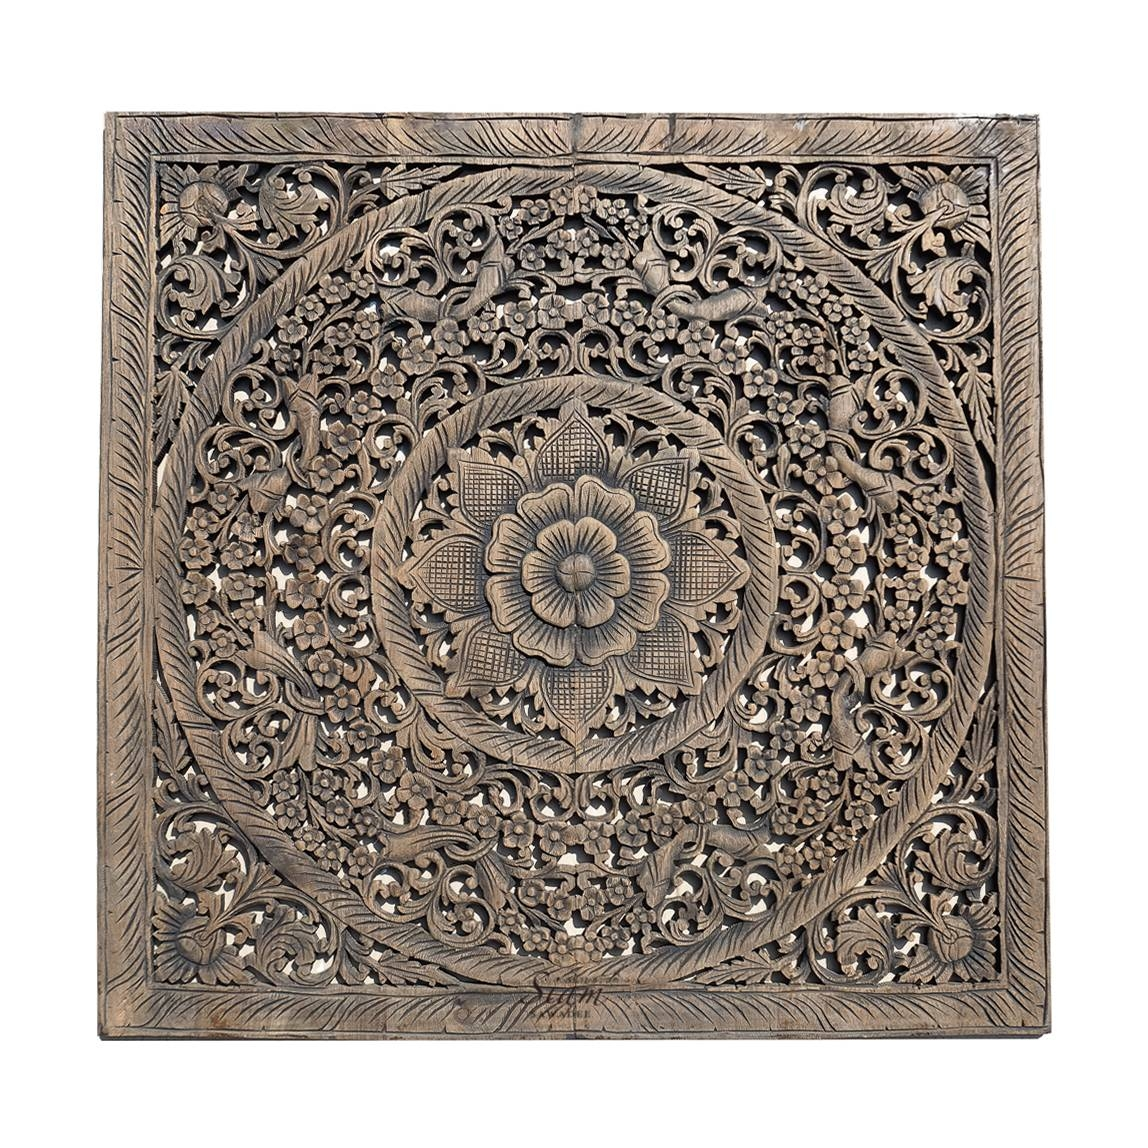 Balinese Antique Wood Carving Wall Art Panel – Siam Sawadee Intended For Current Wood Wall Art Panels (View 3 of 20)